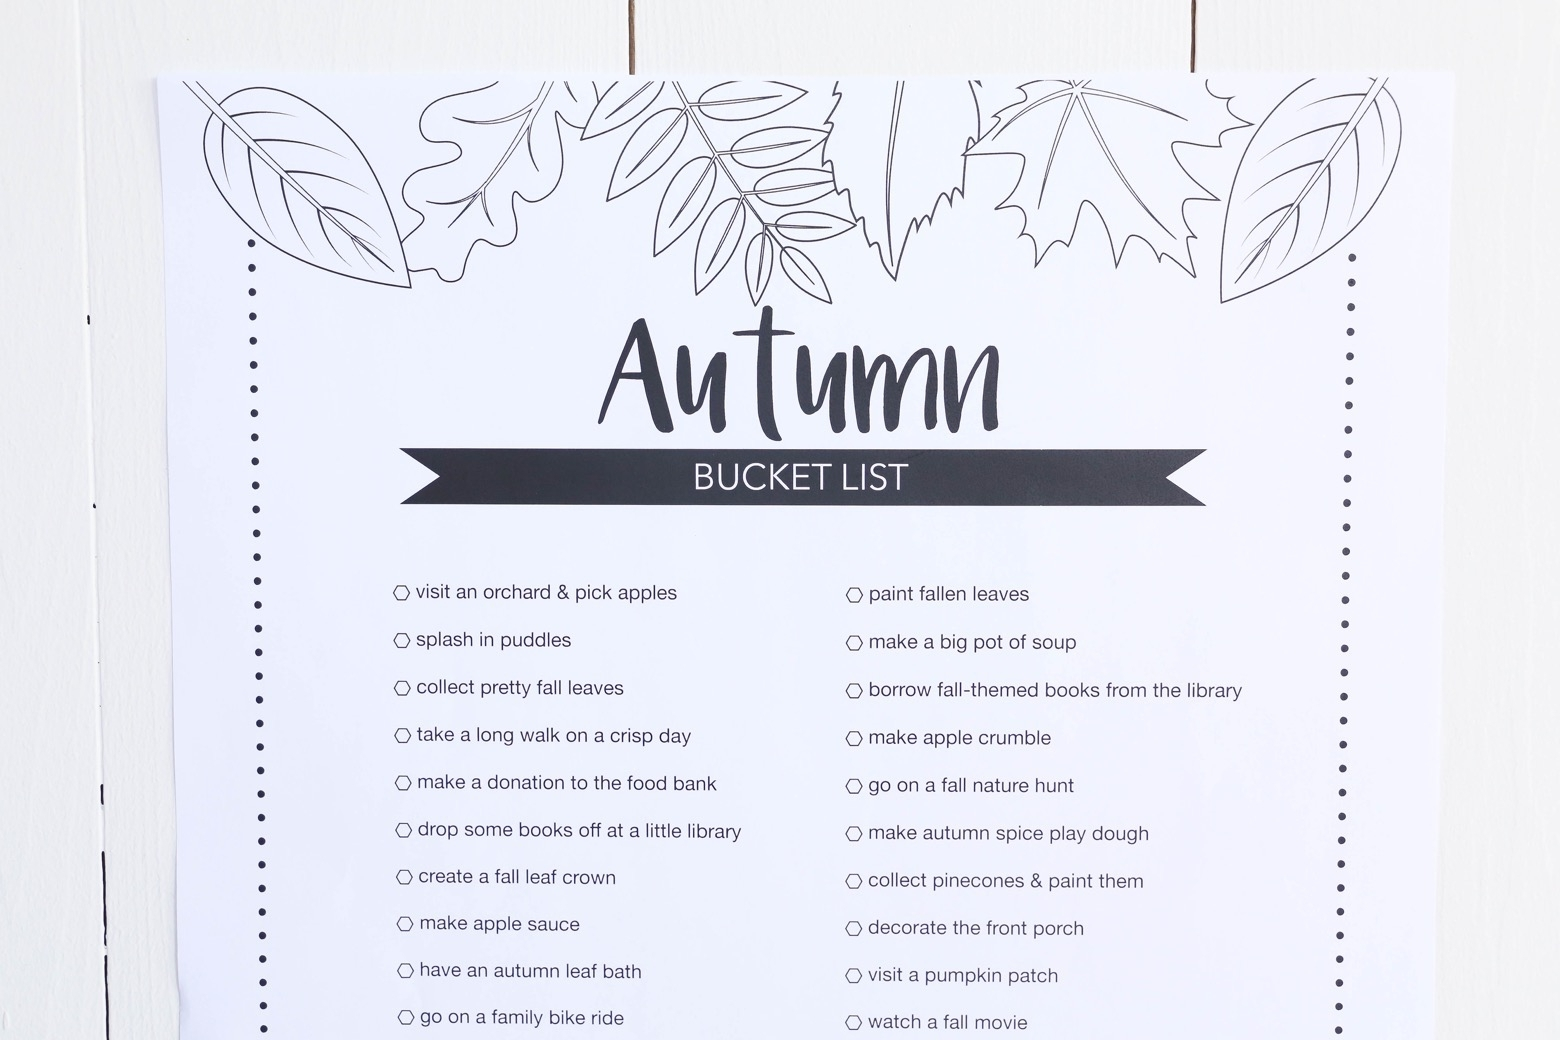 Printables Archives - Mama.papa.bubba. for Free Printable Blank Advent Activities List Minimal